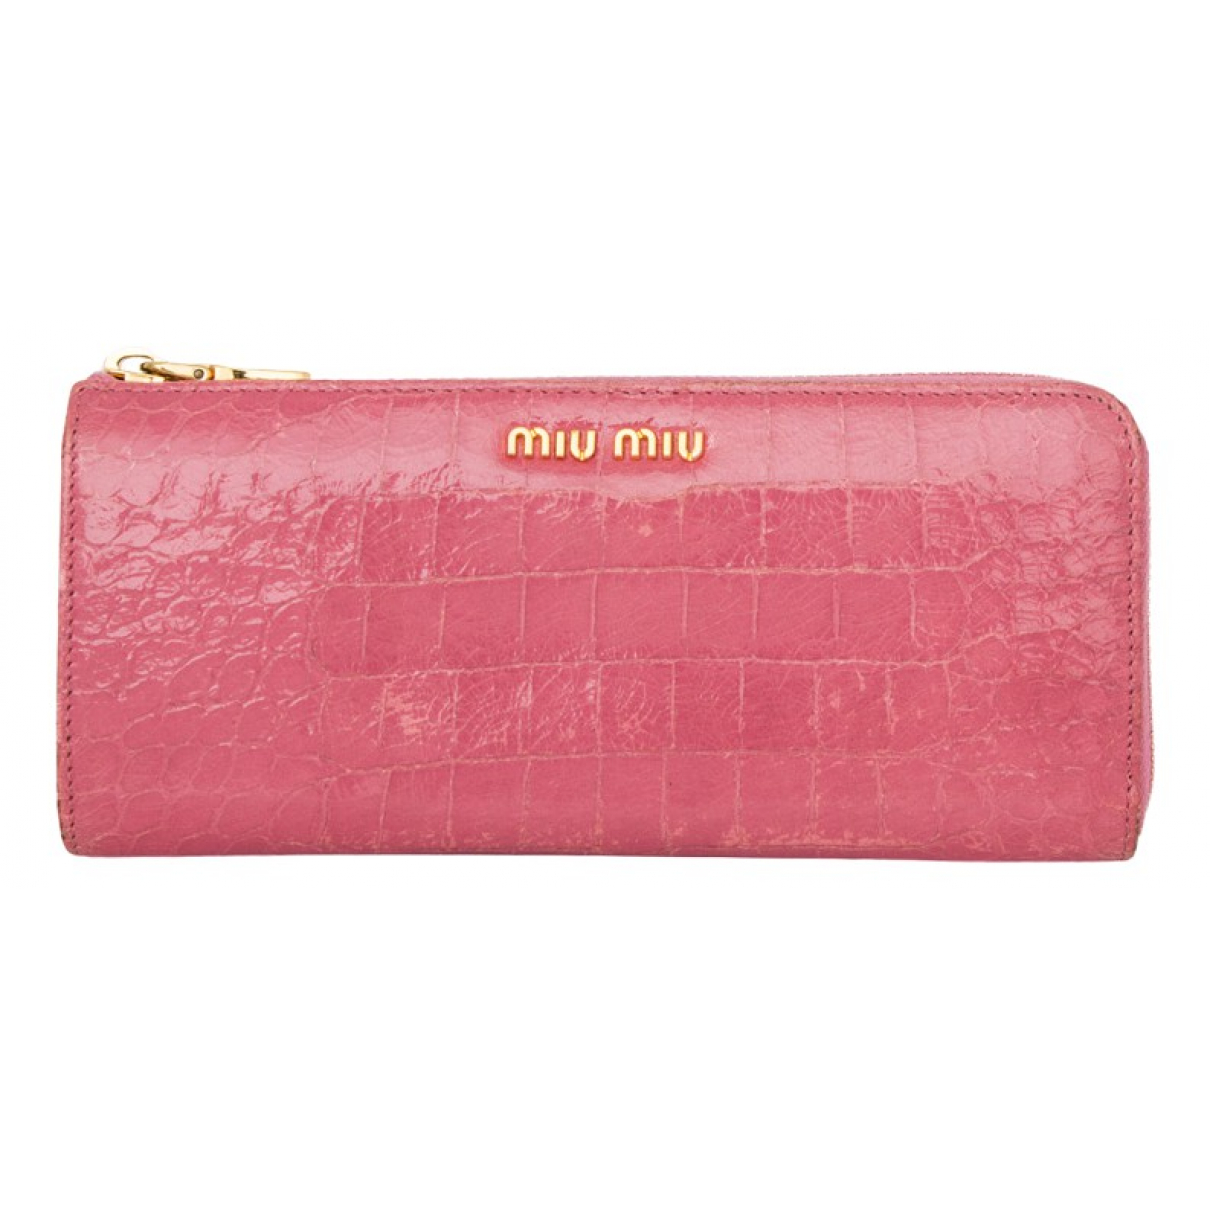 Miu Miu \N Pink Patent leather wallet for Women \N